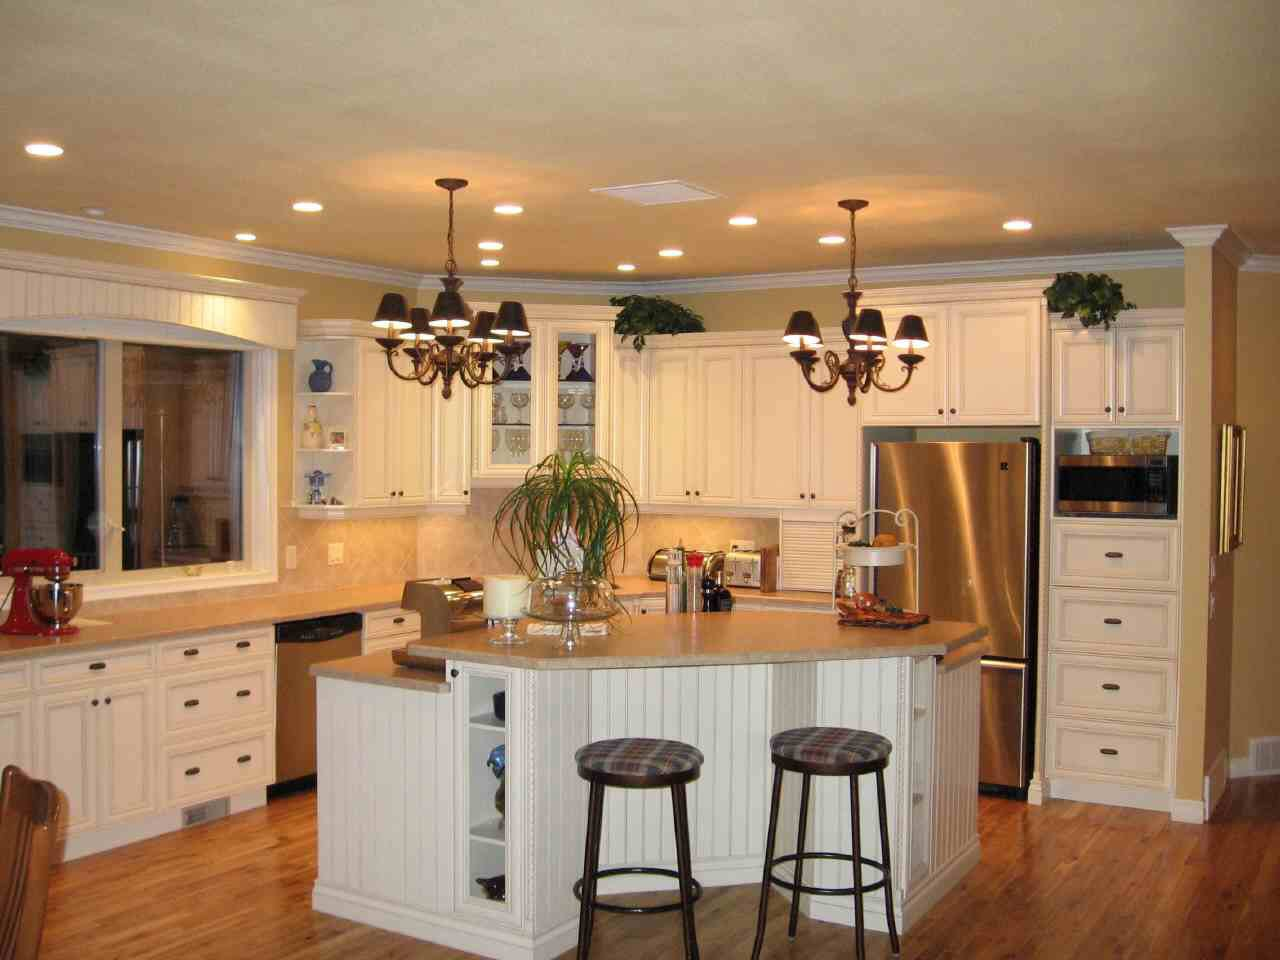 Fabulous Kitchen Decorating Ideas 1280 x 960 · 109 kB · jpeg